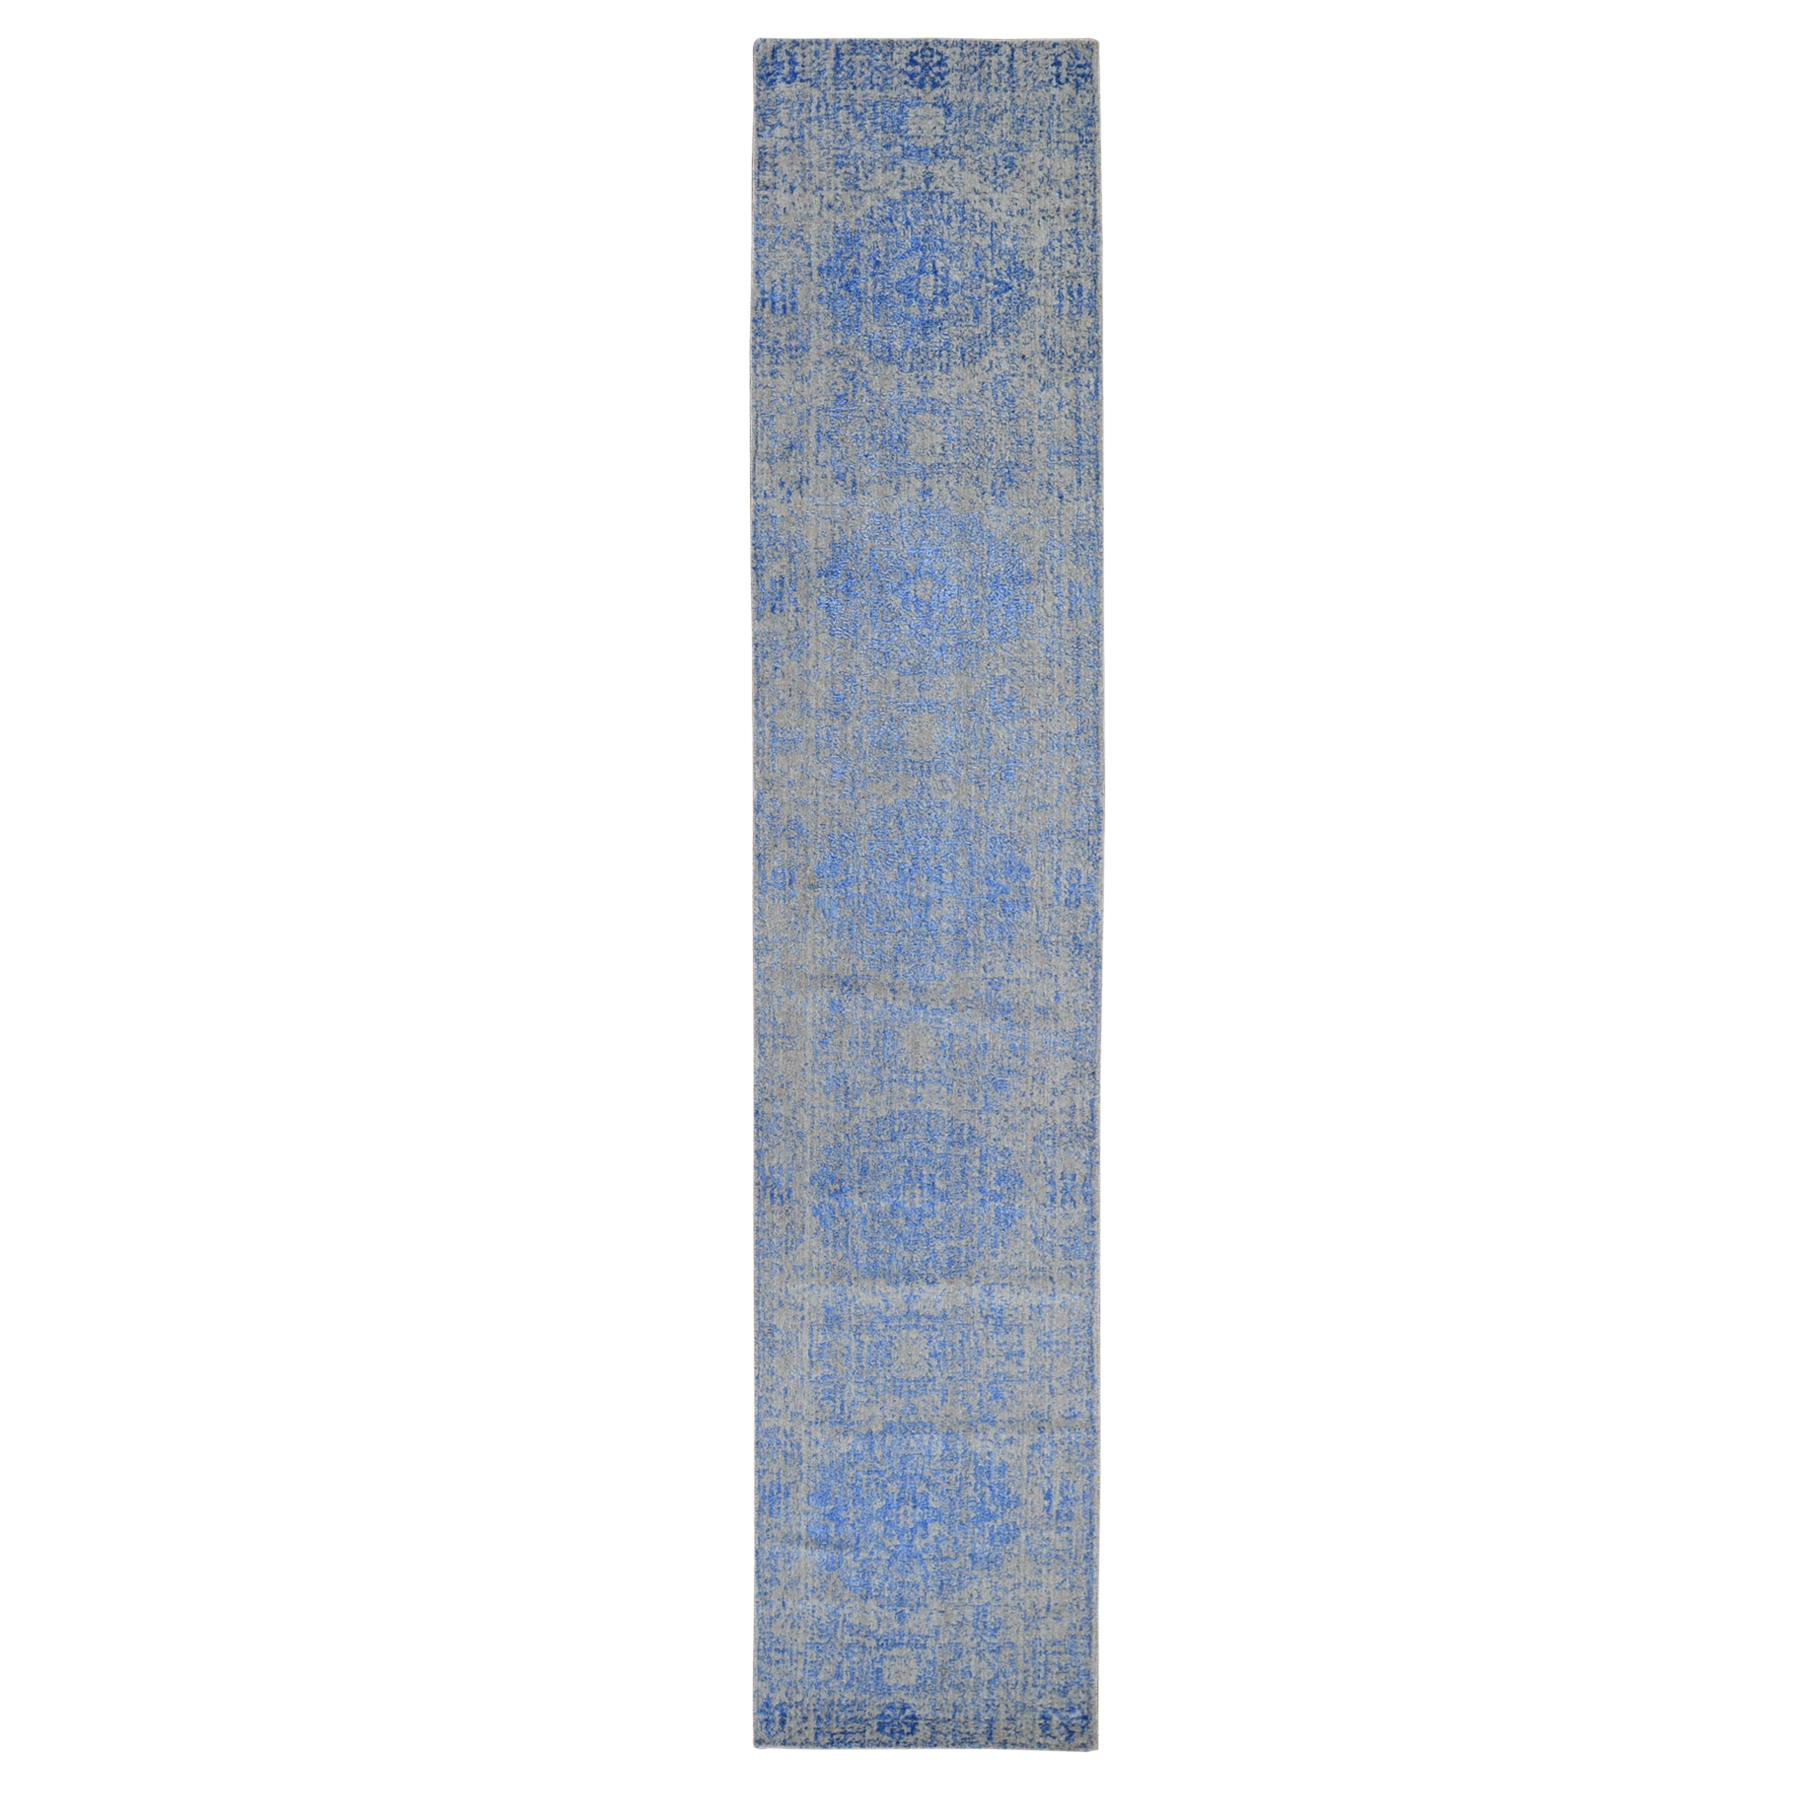 "2'6""x12' Blue Wool and Silk Mamluk Design Jacquard Hand Loomed Runner Oriental Rug"